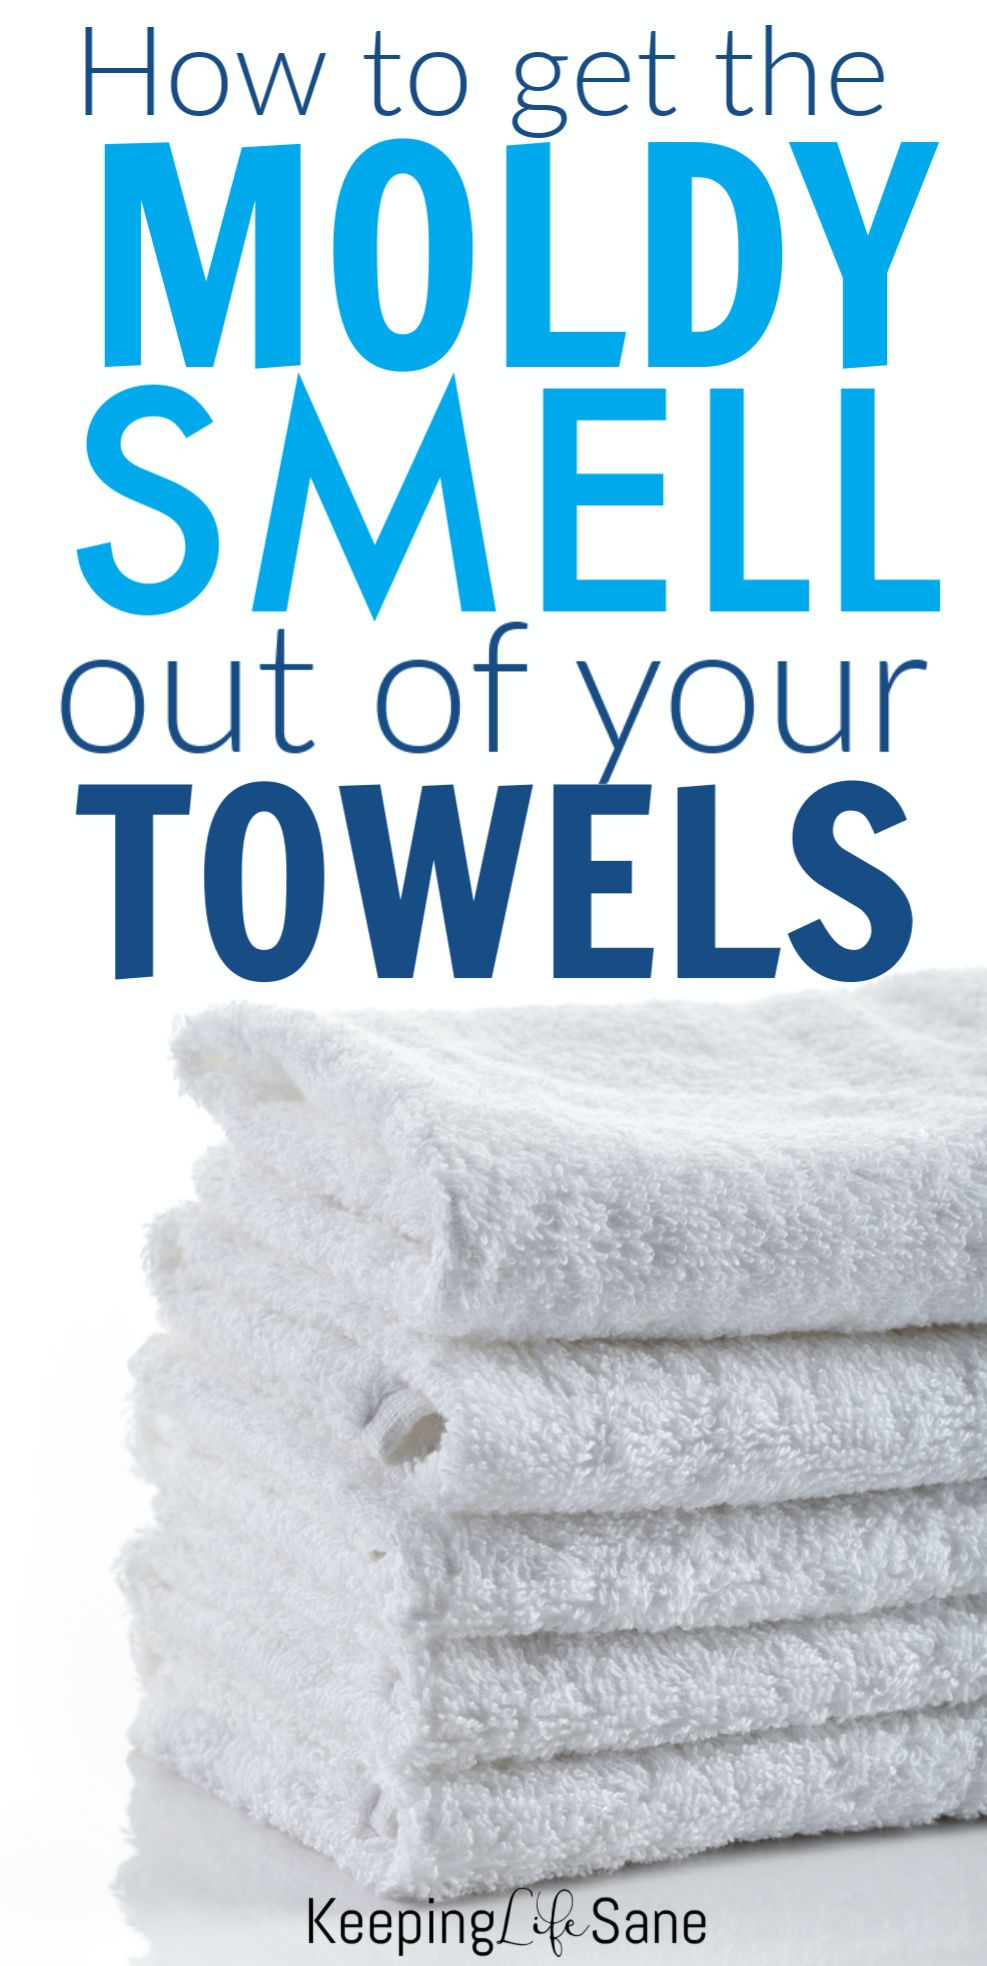 How to get the smell out of moldy towels in 2020 | Towel ...